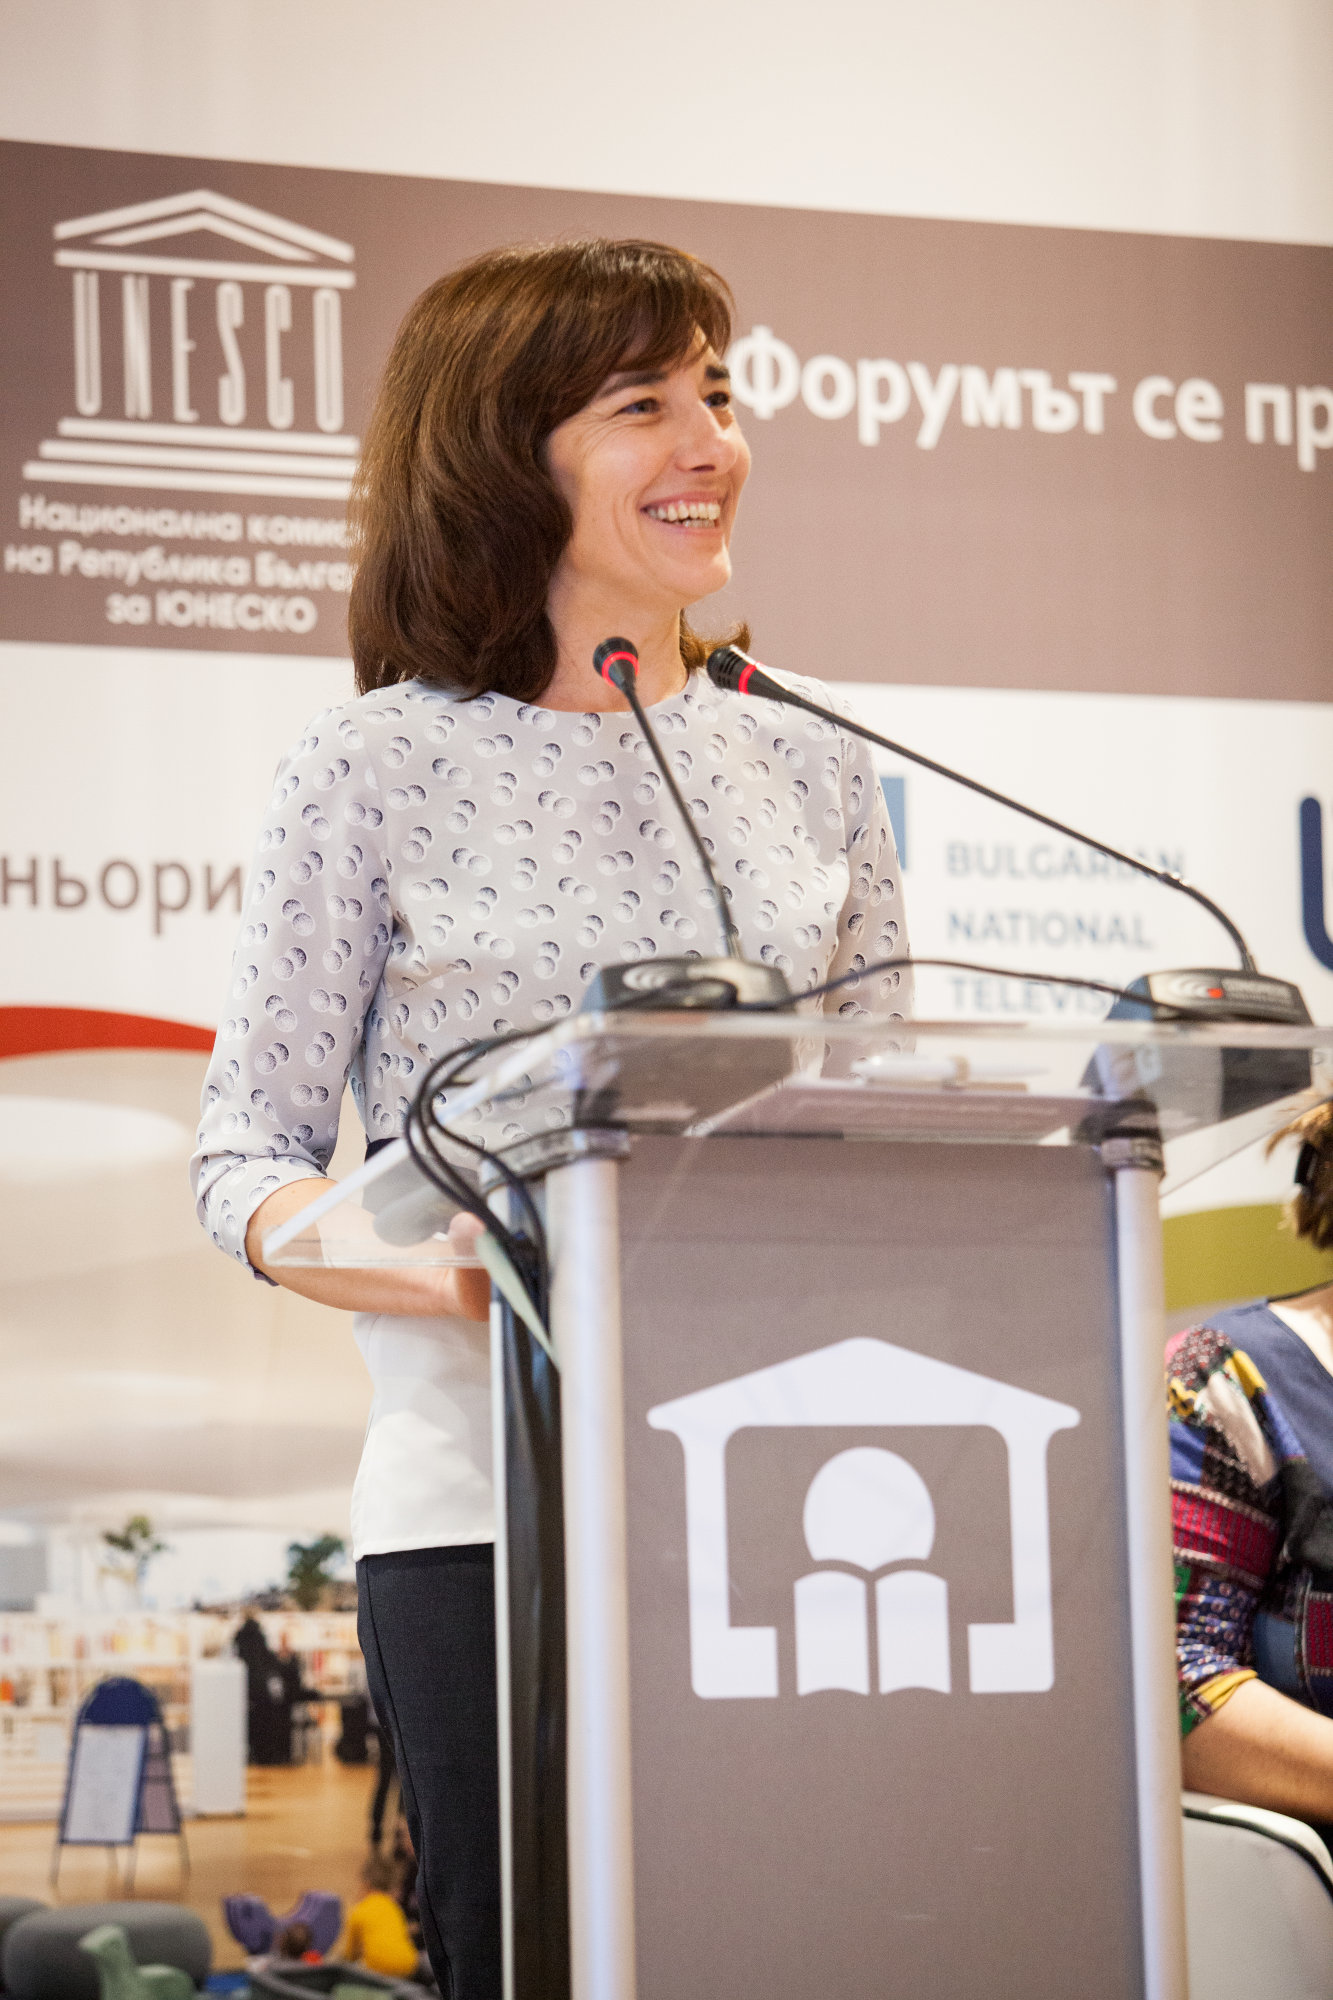 Mrs Elka Zlateva, Bulgarian project coordinator, presents FINLIT Project at the Annual library forum of Global libraries network in Bulgaria 6-8 December, 2019